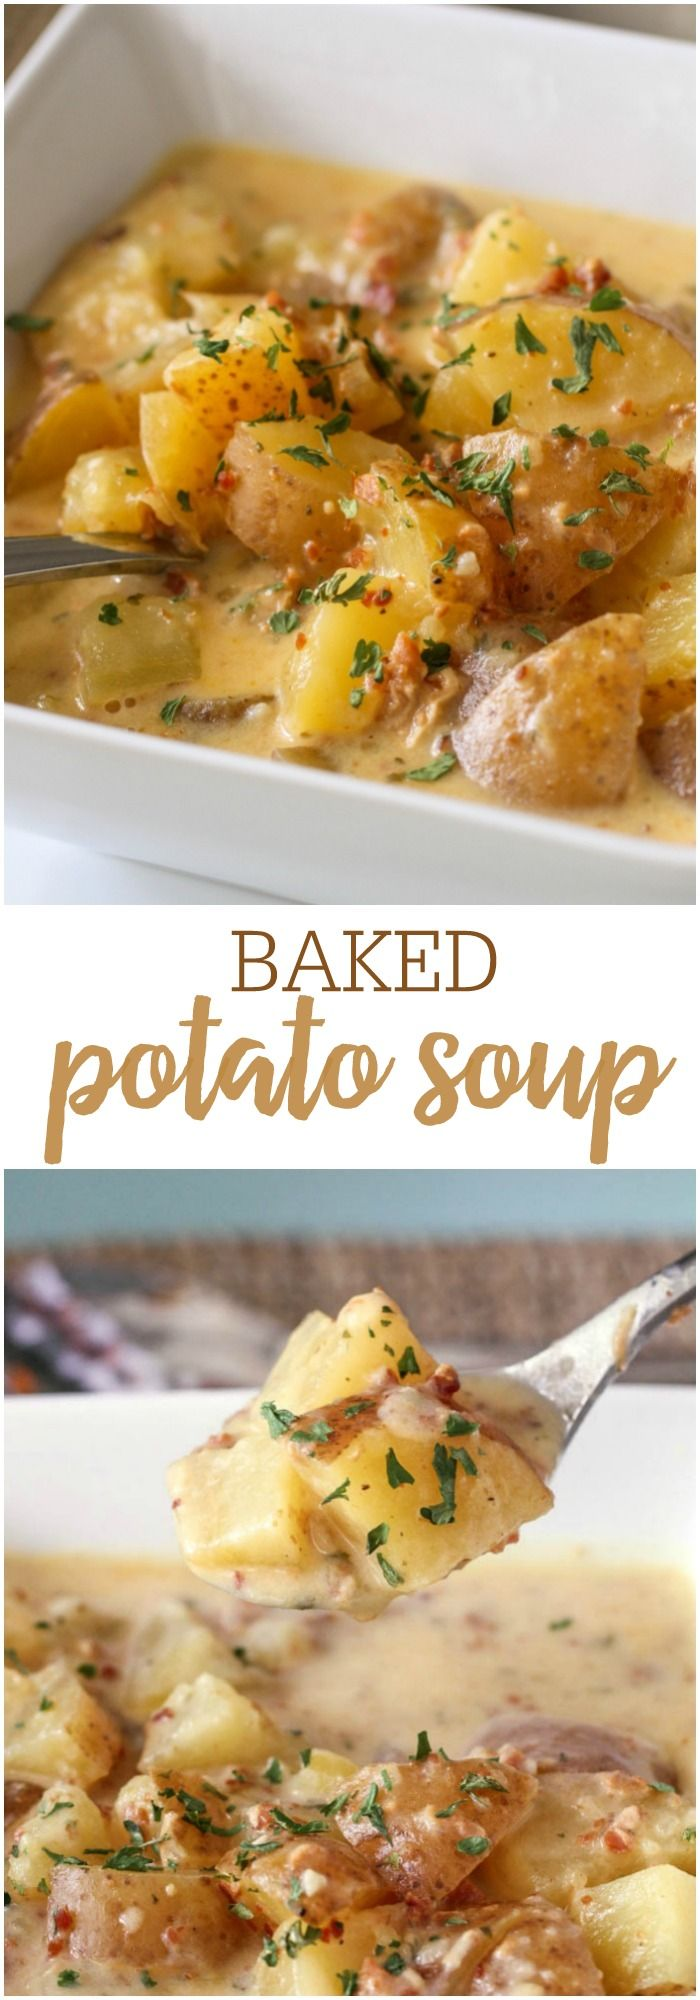 Creamy and delicious Crock Pot Baked Potato Soup - so full of flavor and easy too (my kind of recipe!!)